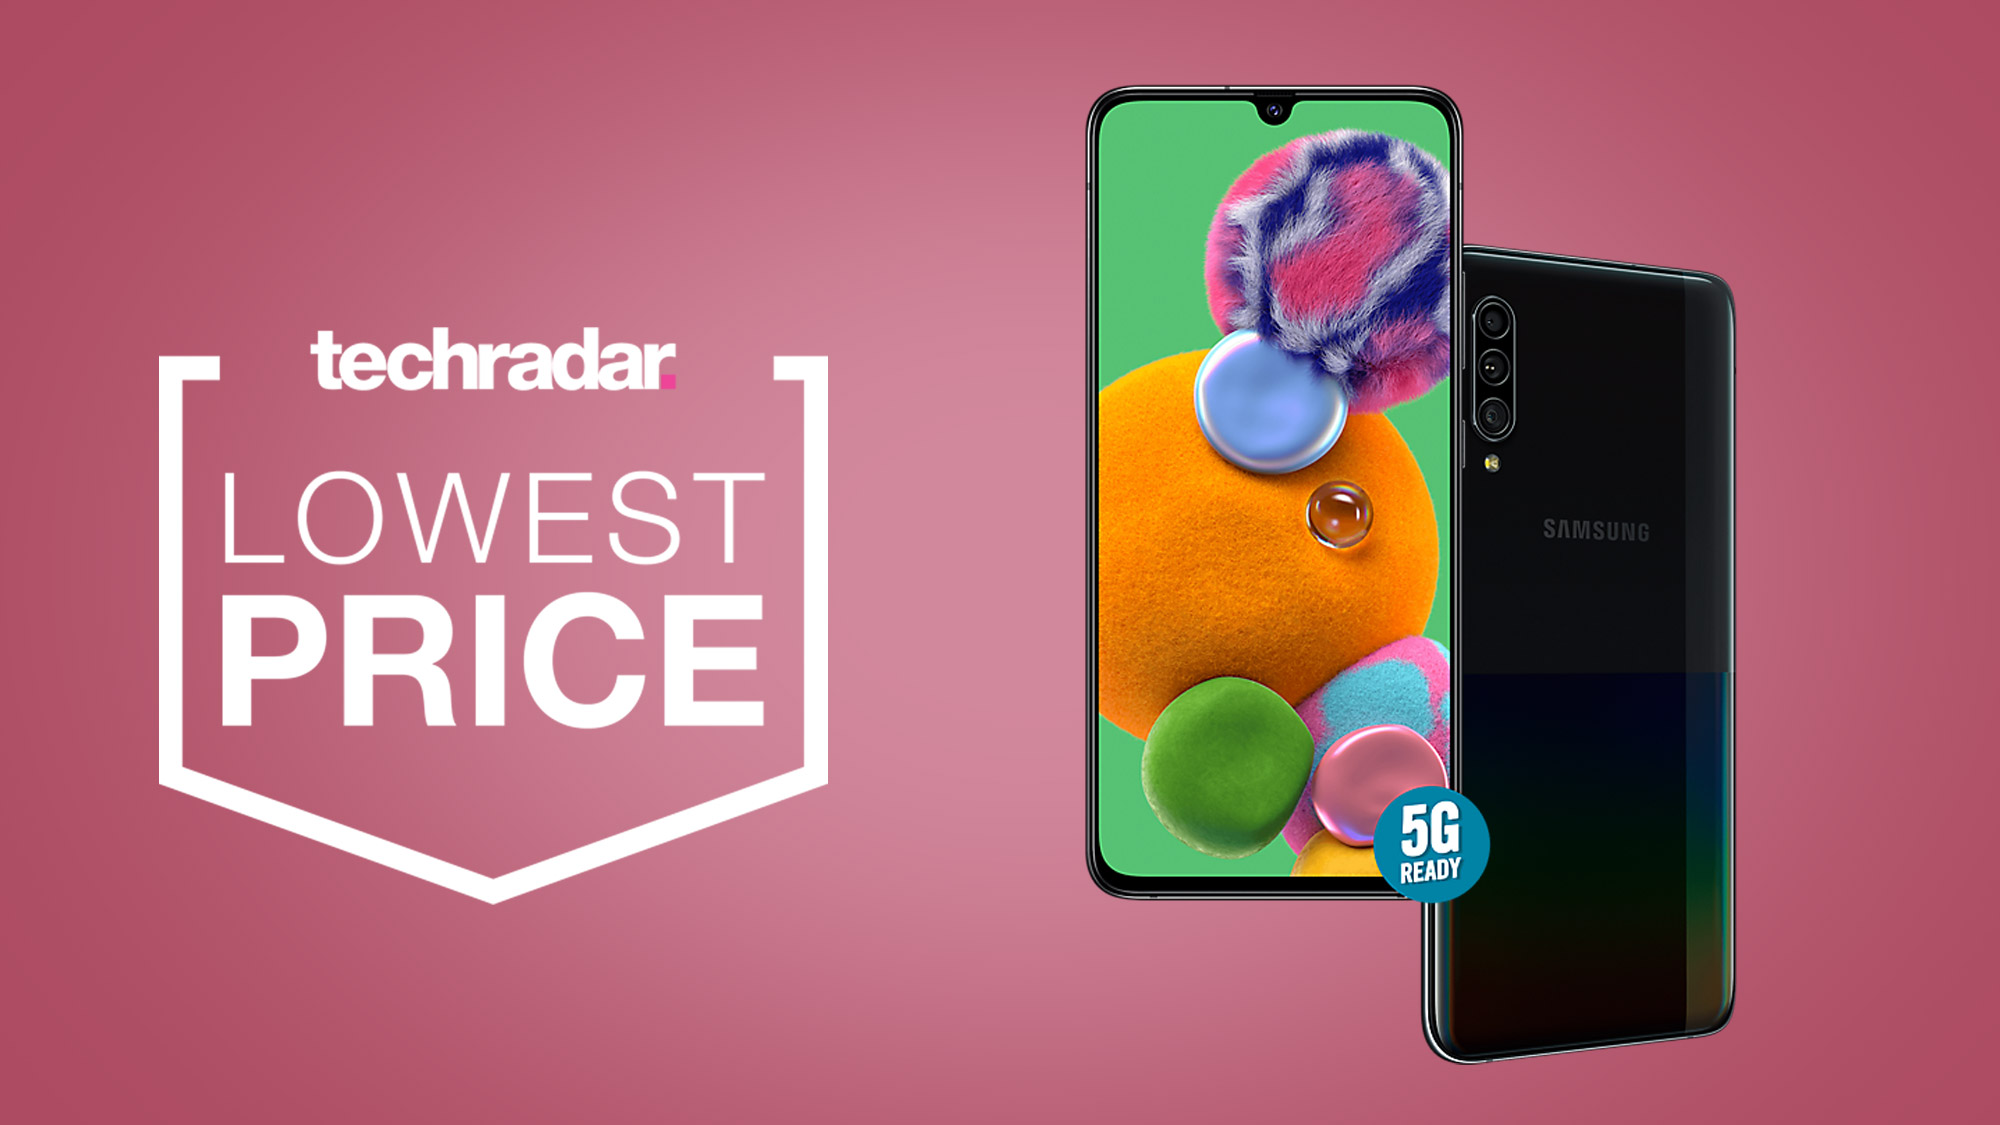 Looking for a cheap 5G phone? This Samsung Galaxy A90 is now only £399